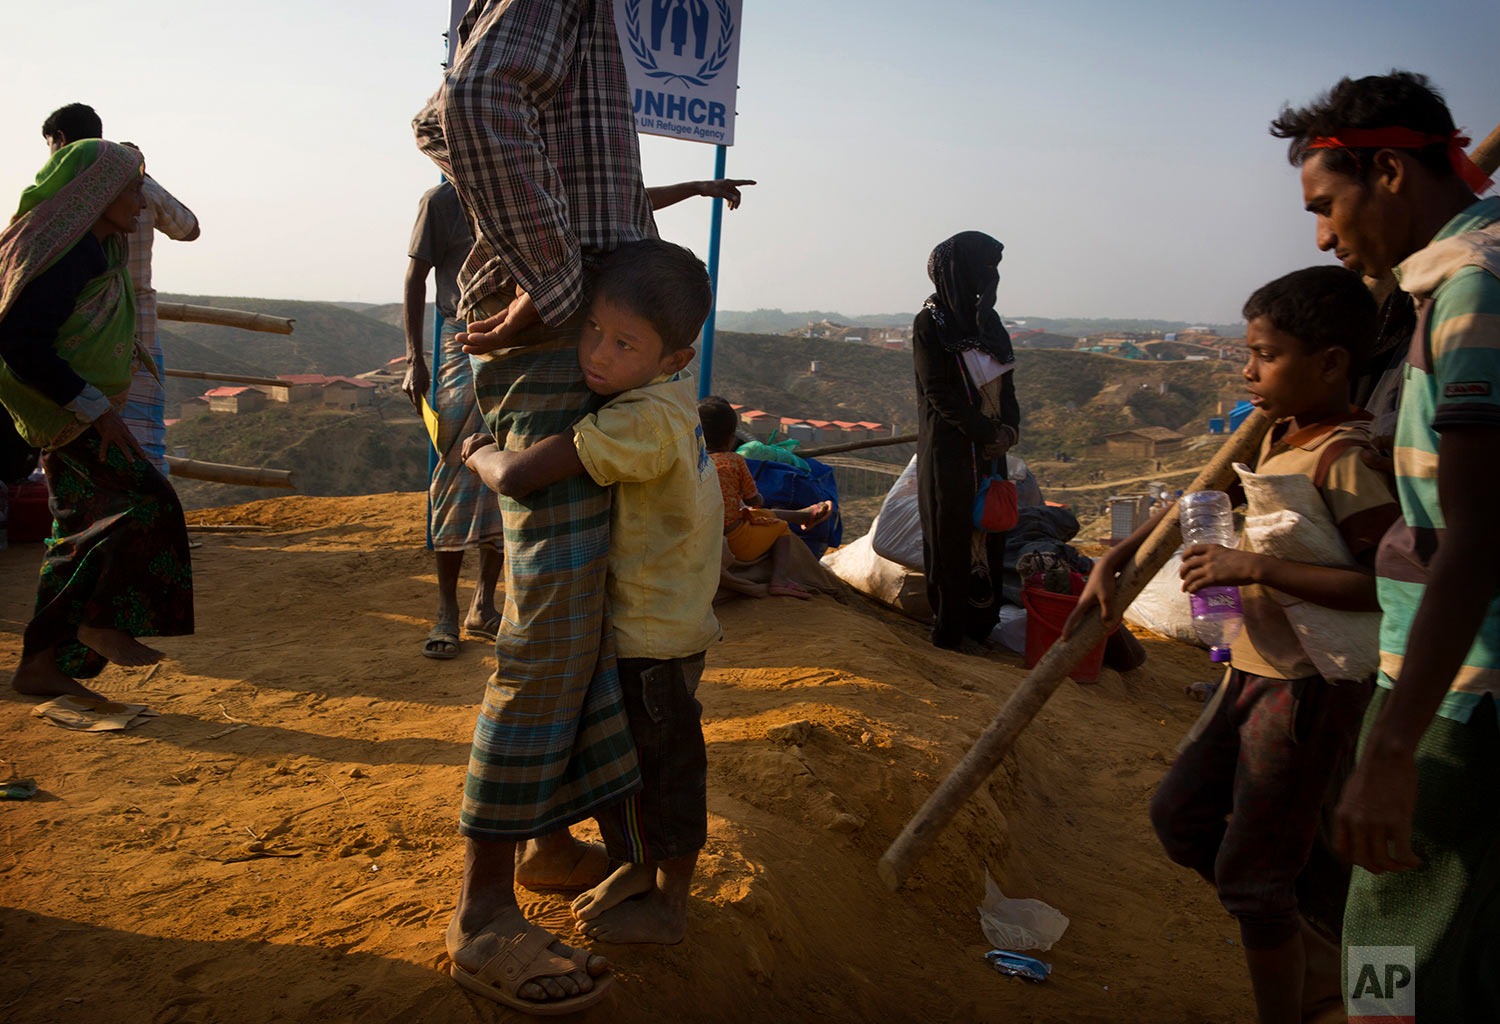 A Rohingya refugee boy who was staying in no-man's land at Bandarban between Myanmar and Bangladesh border, clings to his father after arriving at Balukhali refugee camp 50 kilometres (32 miles) from, Cox's Bazar, Bangladesh Wednesday, Jan. 24, 2018. (AP Photo/Manish Swarup)   See these photos on AP Images